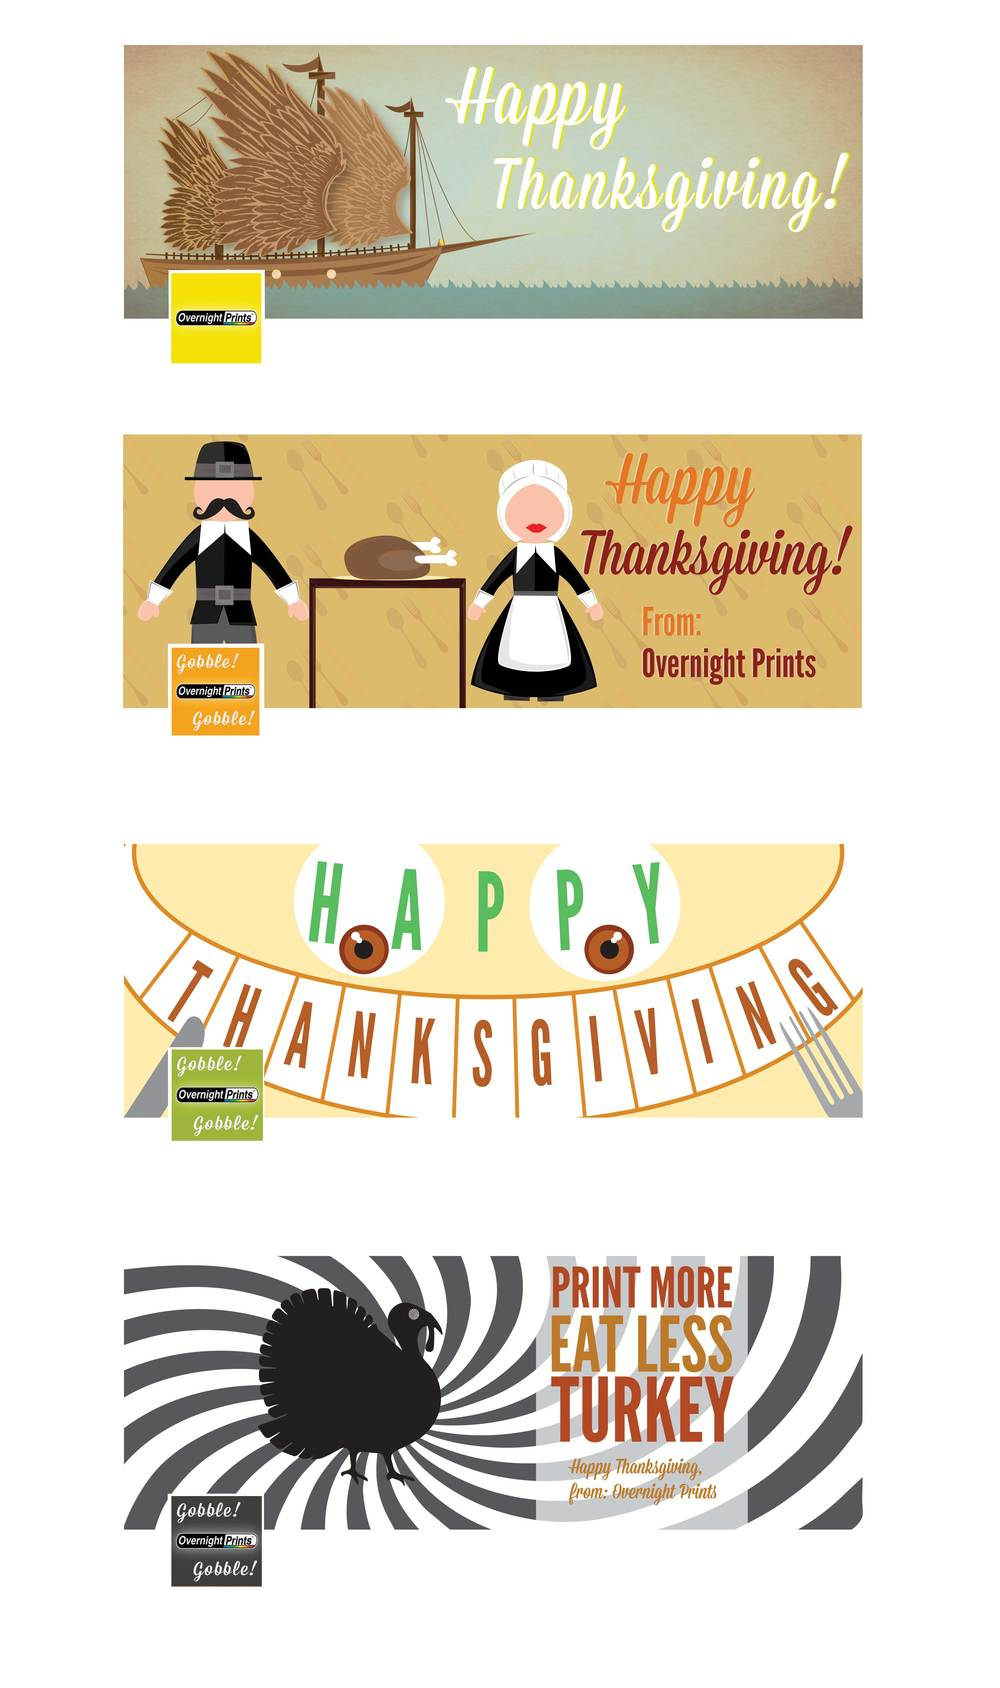 thanksgivingbanneroptions.jpg